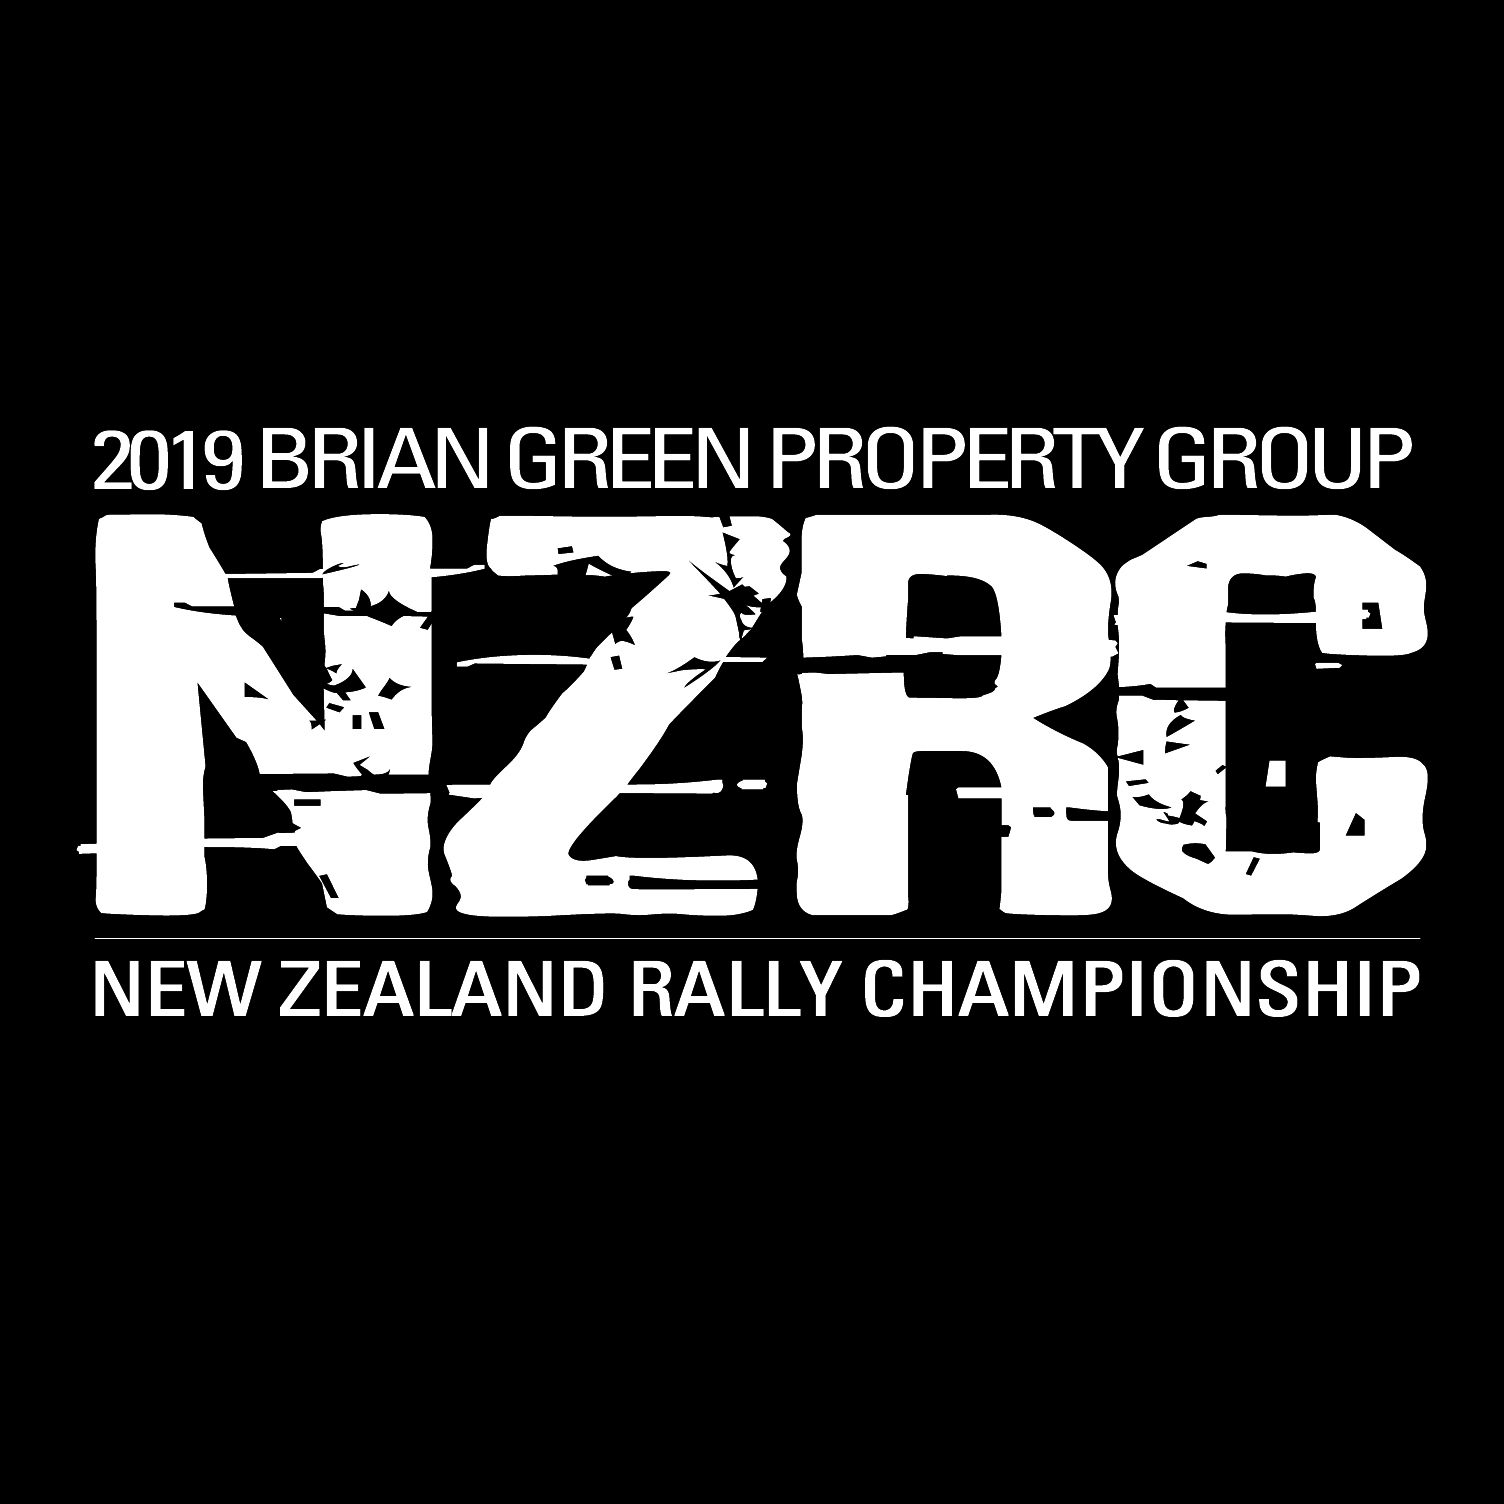 nzrc2014 | :: Brian Green Property Group New Zealand Rally Championship ::